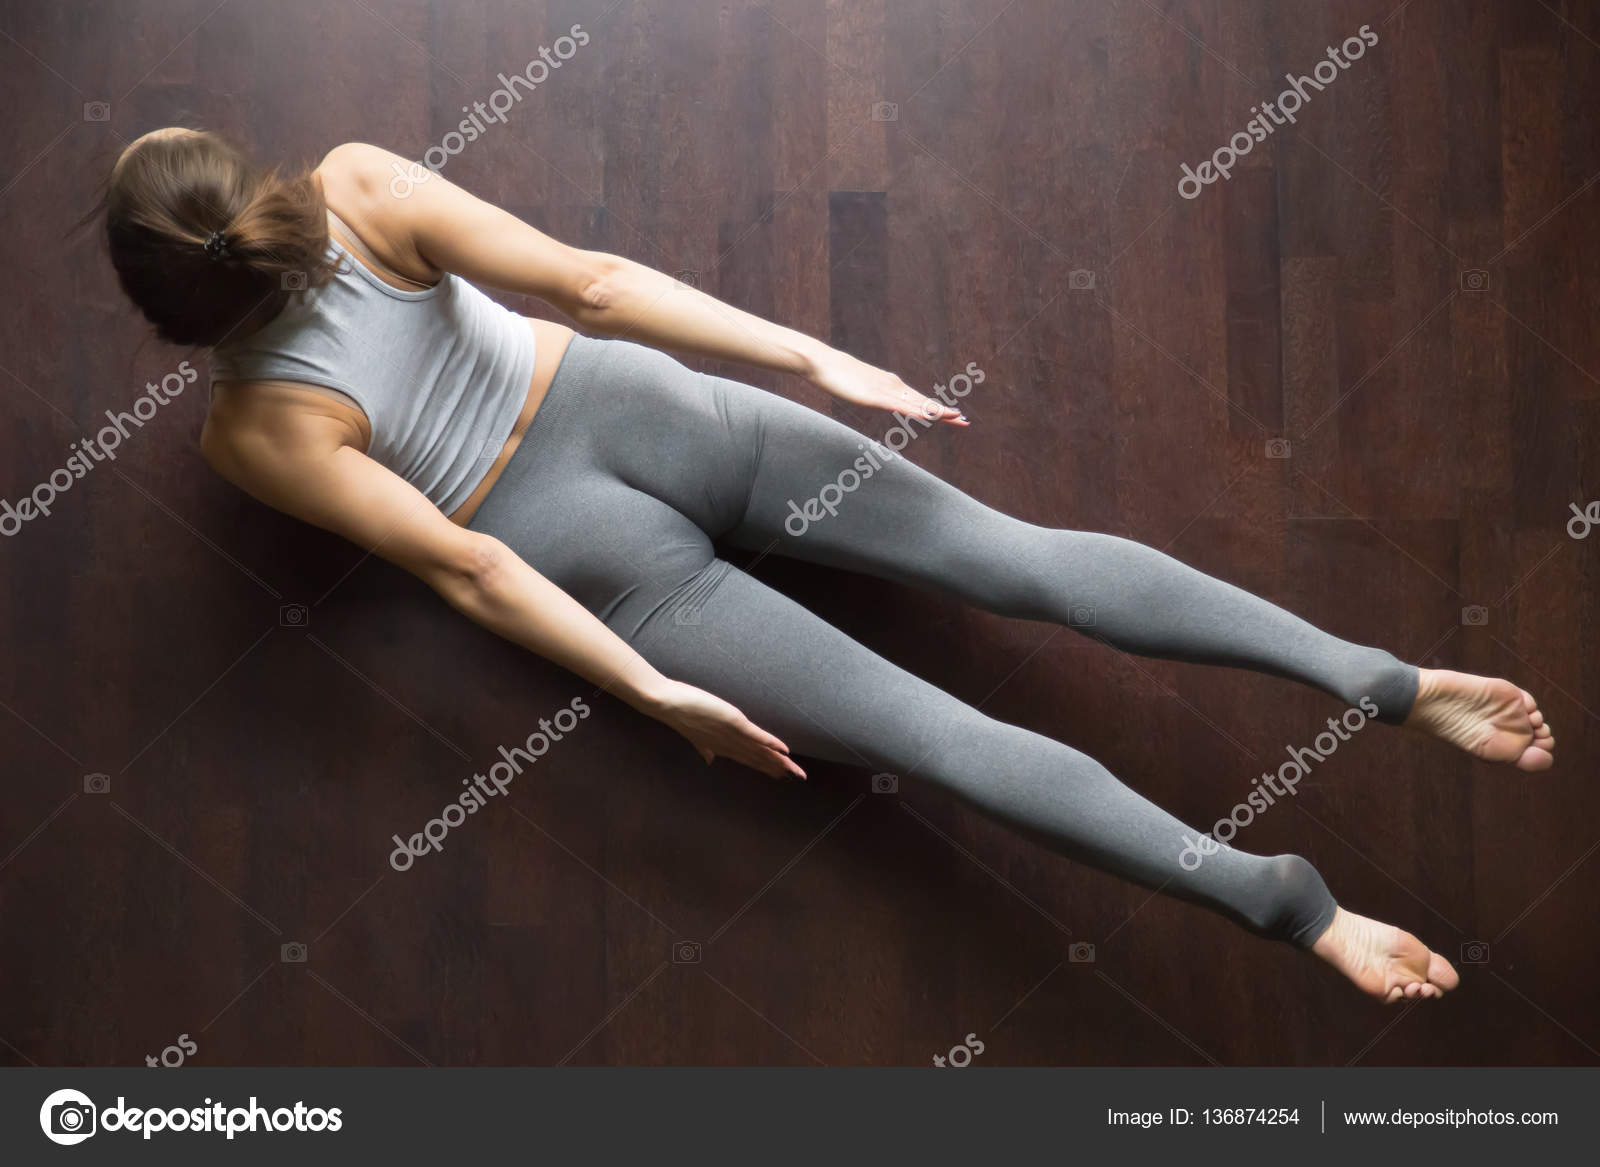 Beautiful Young Model Working Out In Home Interior Doing Yoga Or Pilates Exercise On Wooden Floor Double Leg Kicks Salabhasana Locust Pose Top View